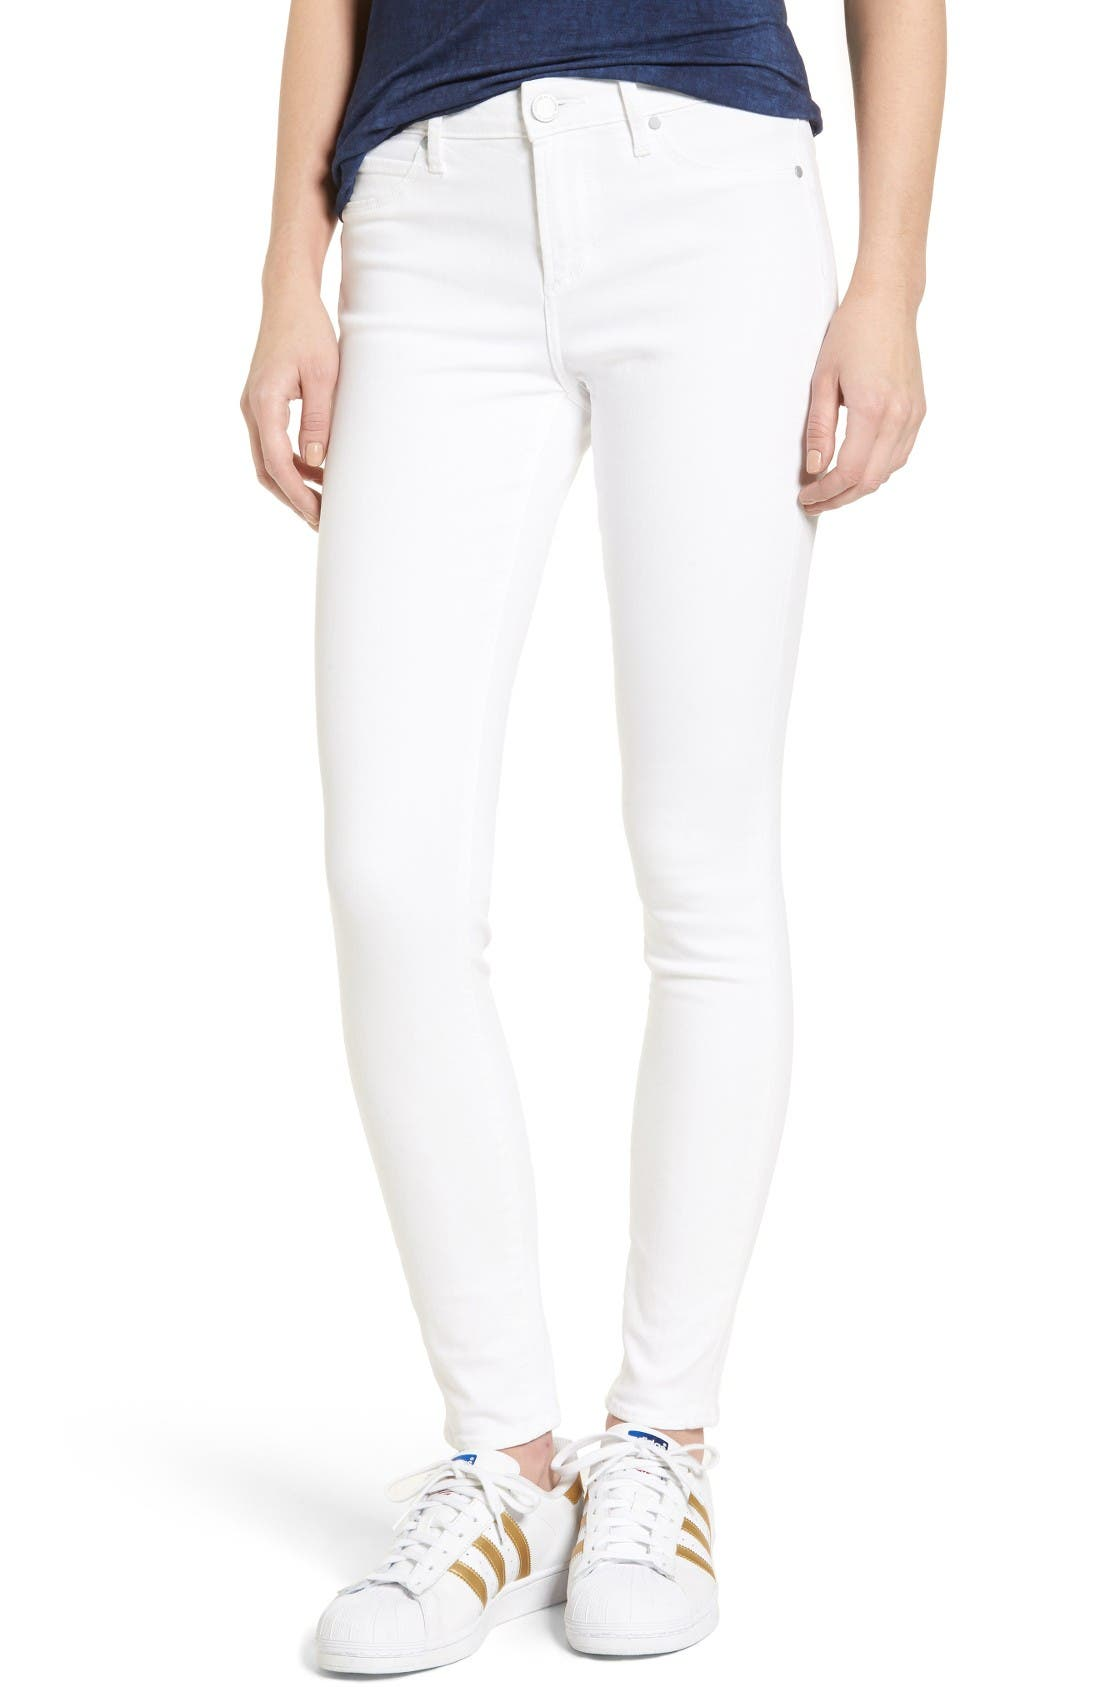 Main Image - Articles of Society Sarah Skinny Jeans (Clear White)